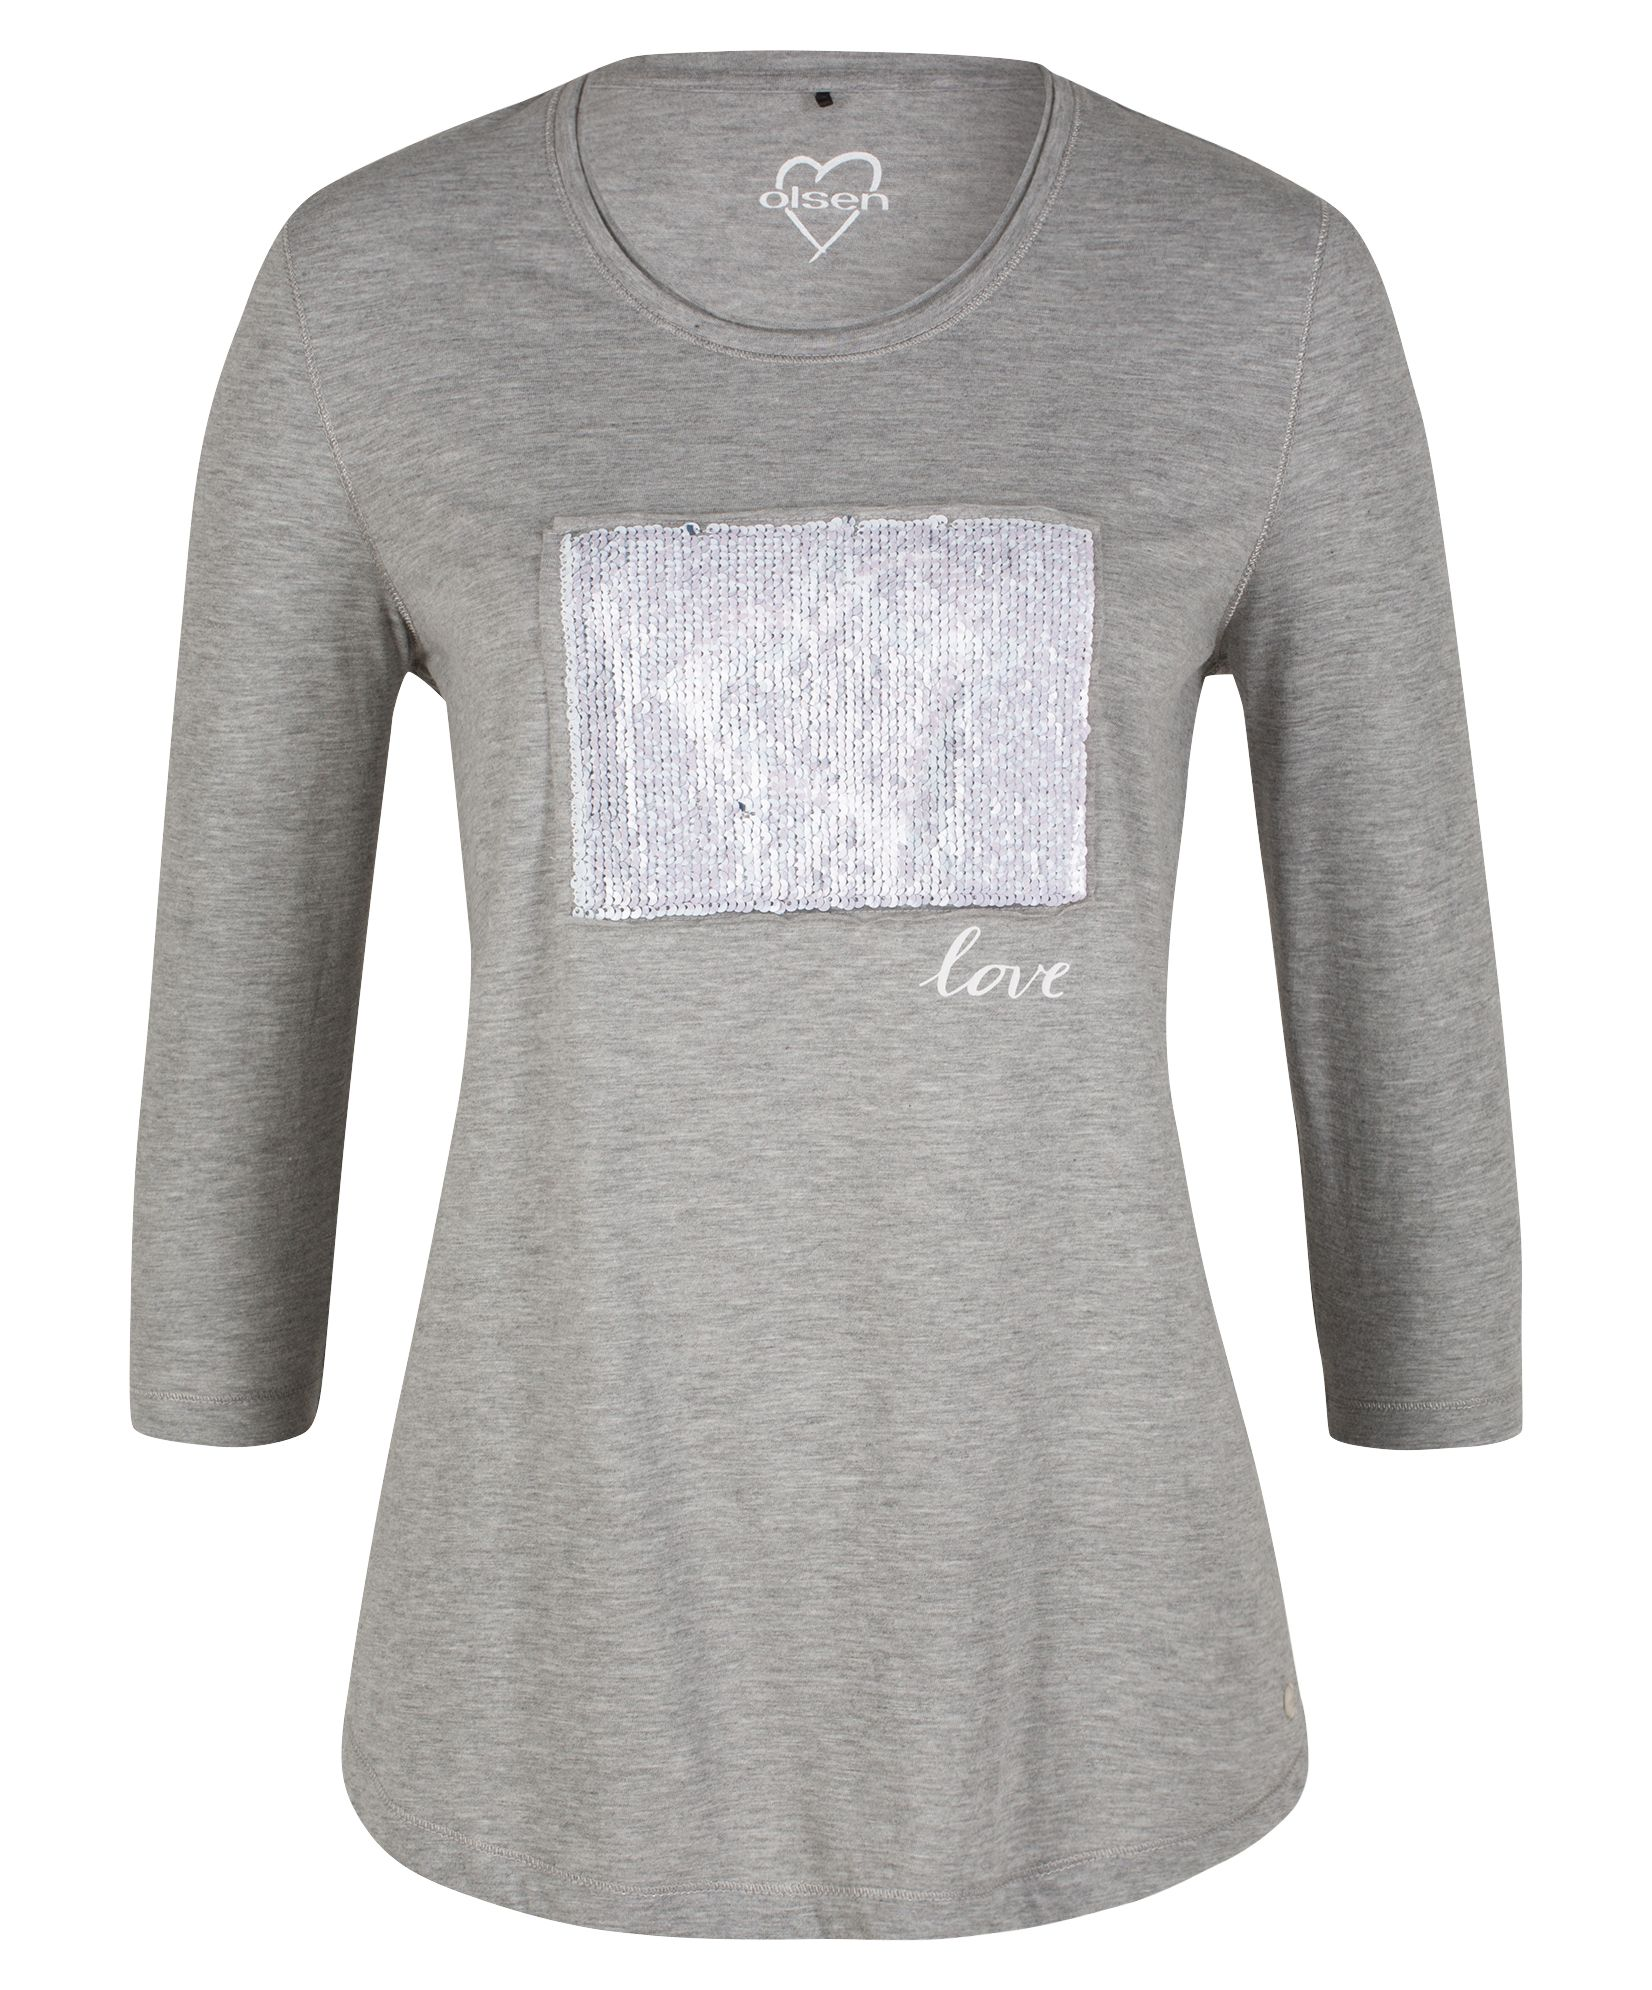 Olsen T-Shirt Effective Sequins, Grey